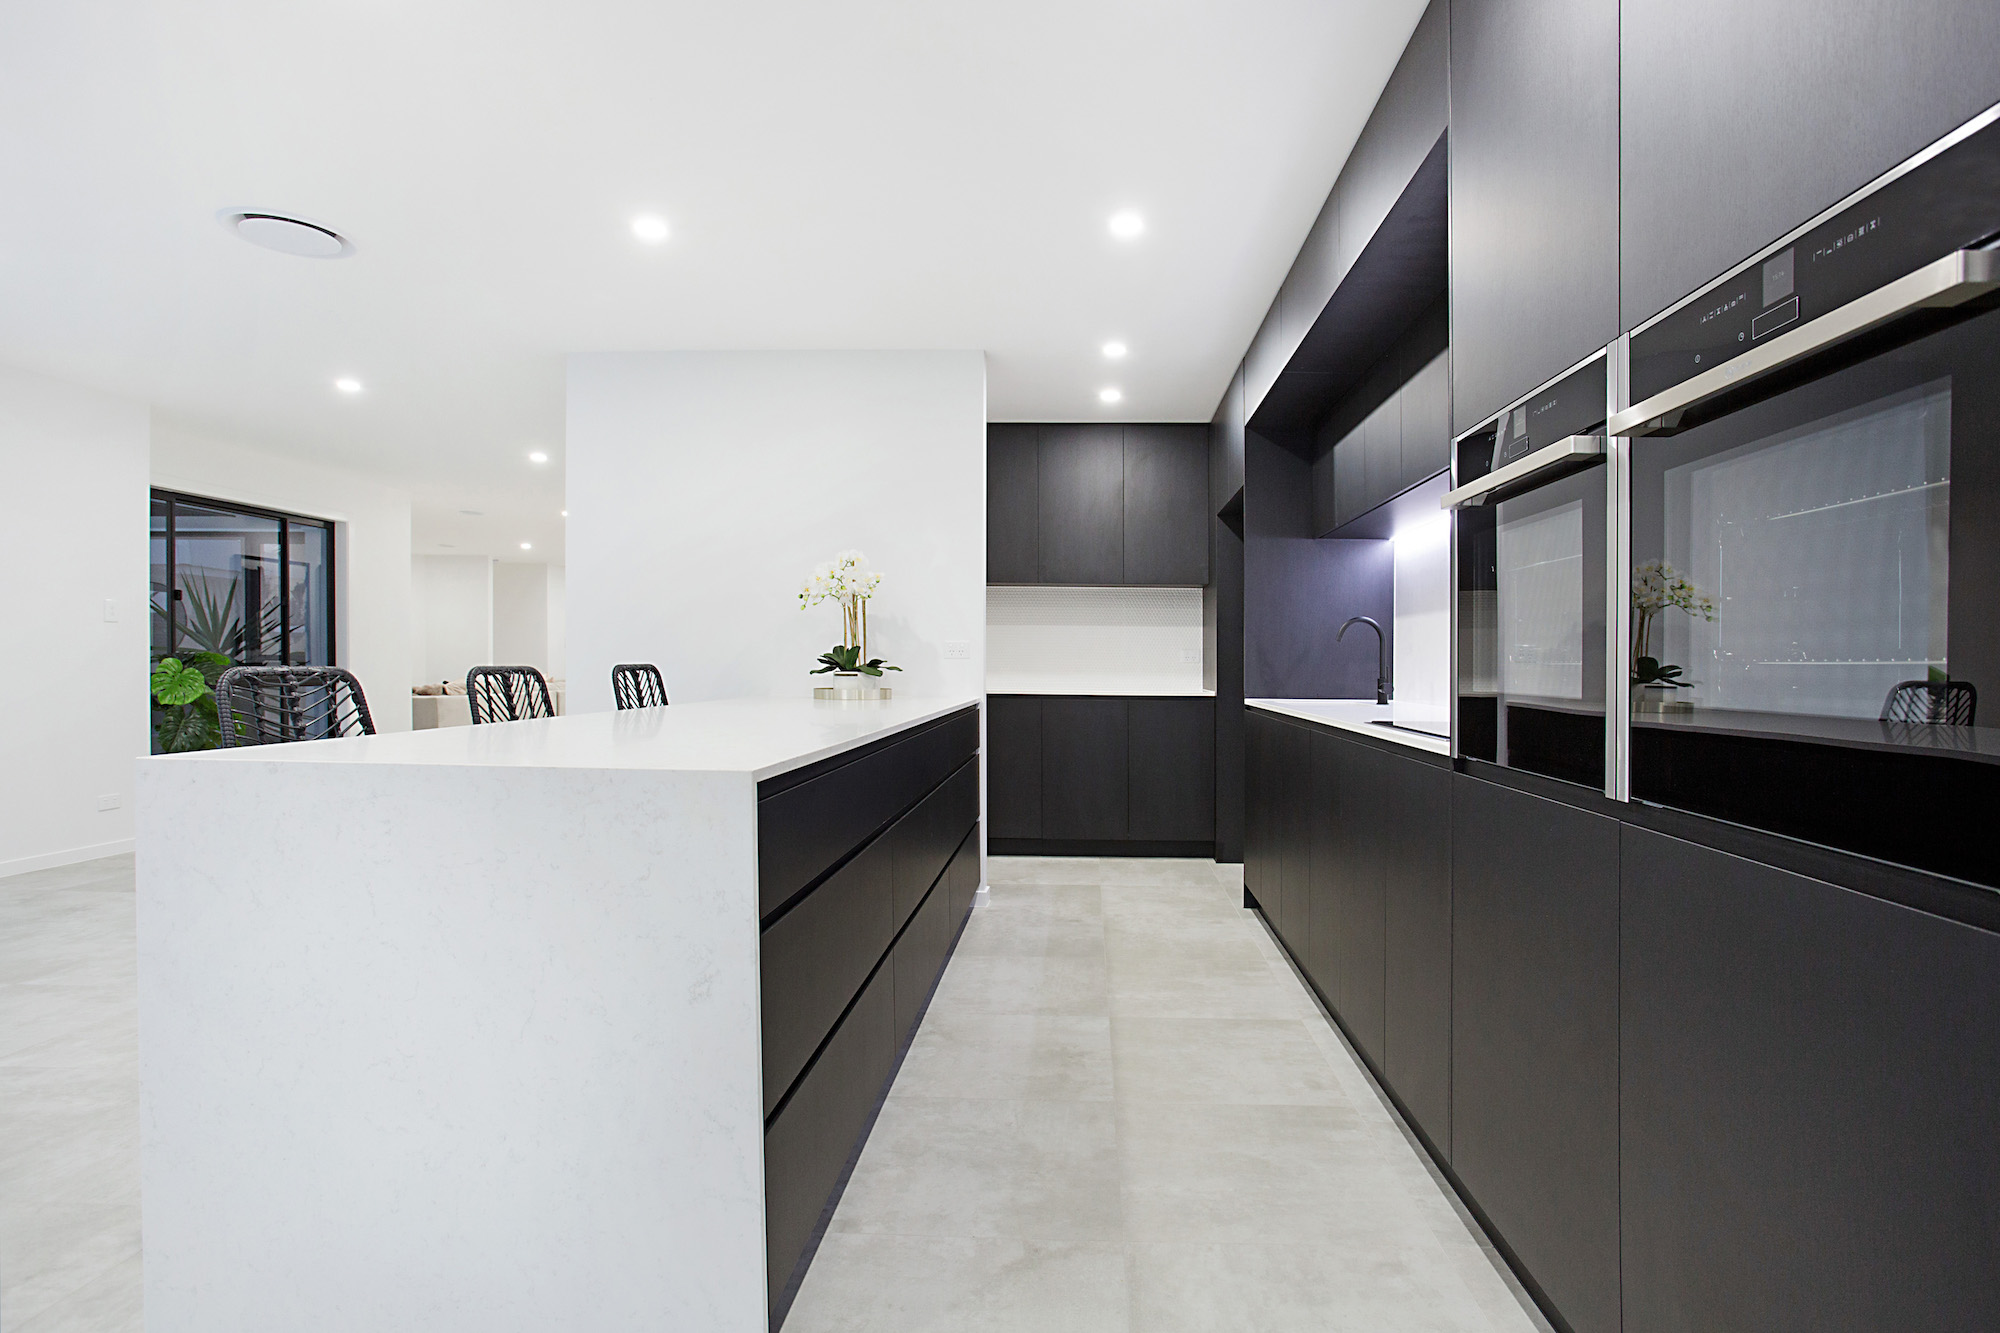 Luxury black and white kitchen with butlers pantry boasting white penny round tiles